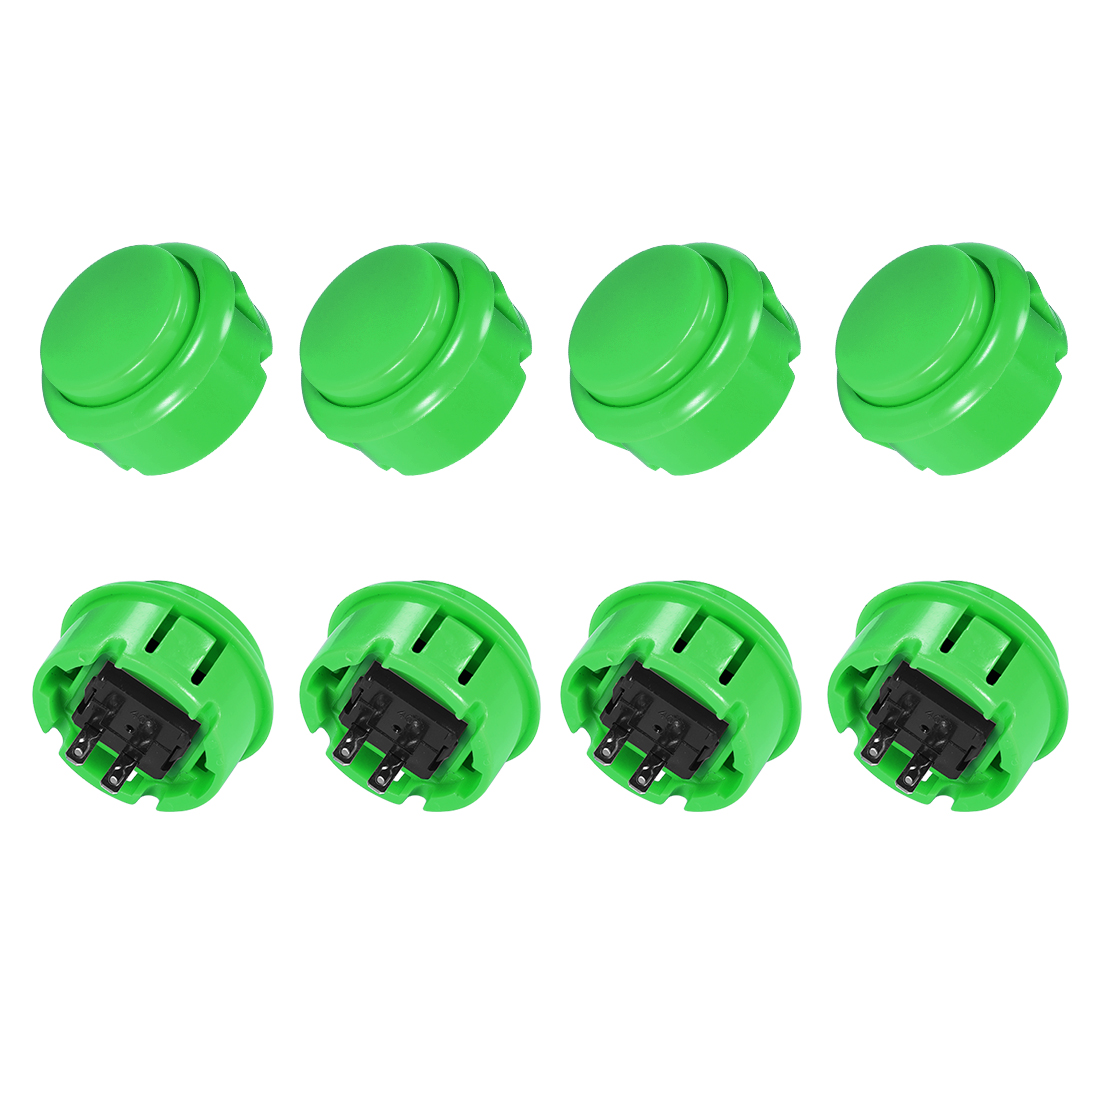 30mm Mounting Momentary Game Push Button Round for Video Games Green 8pcs